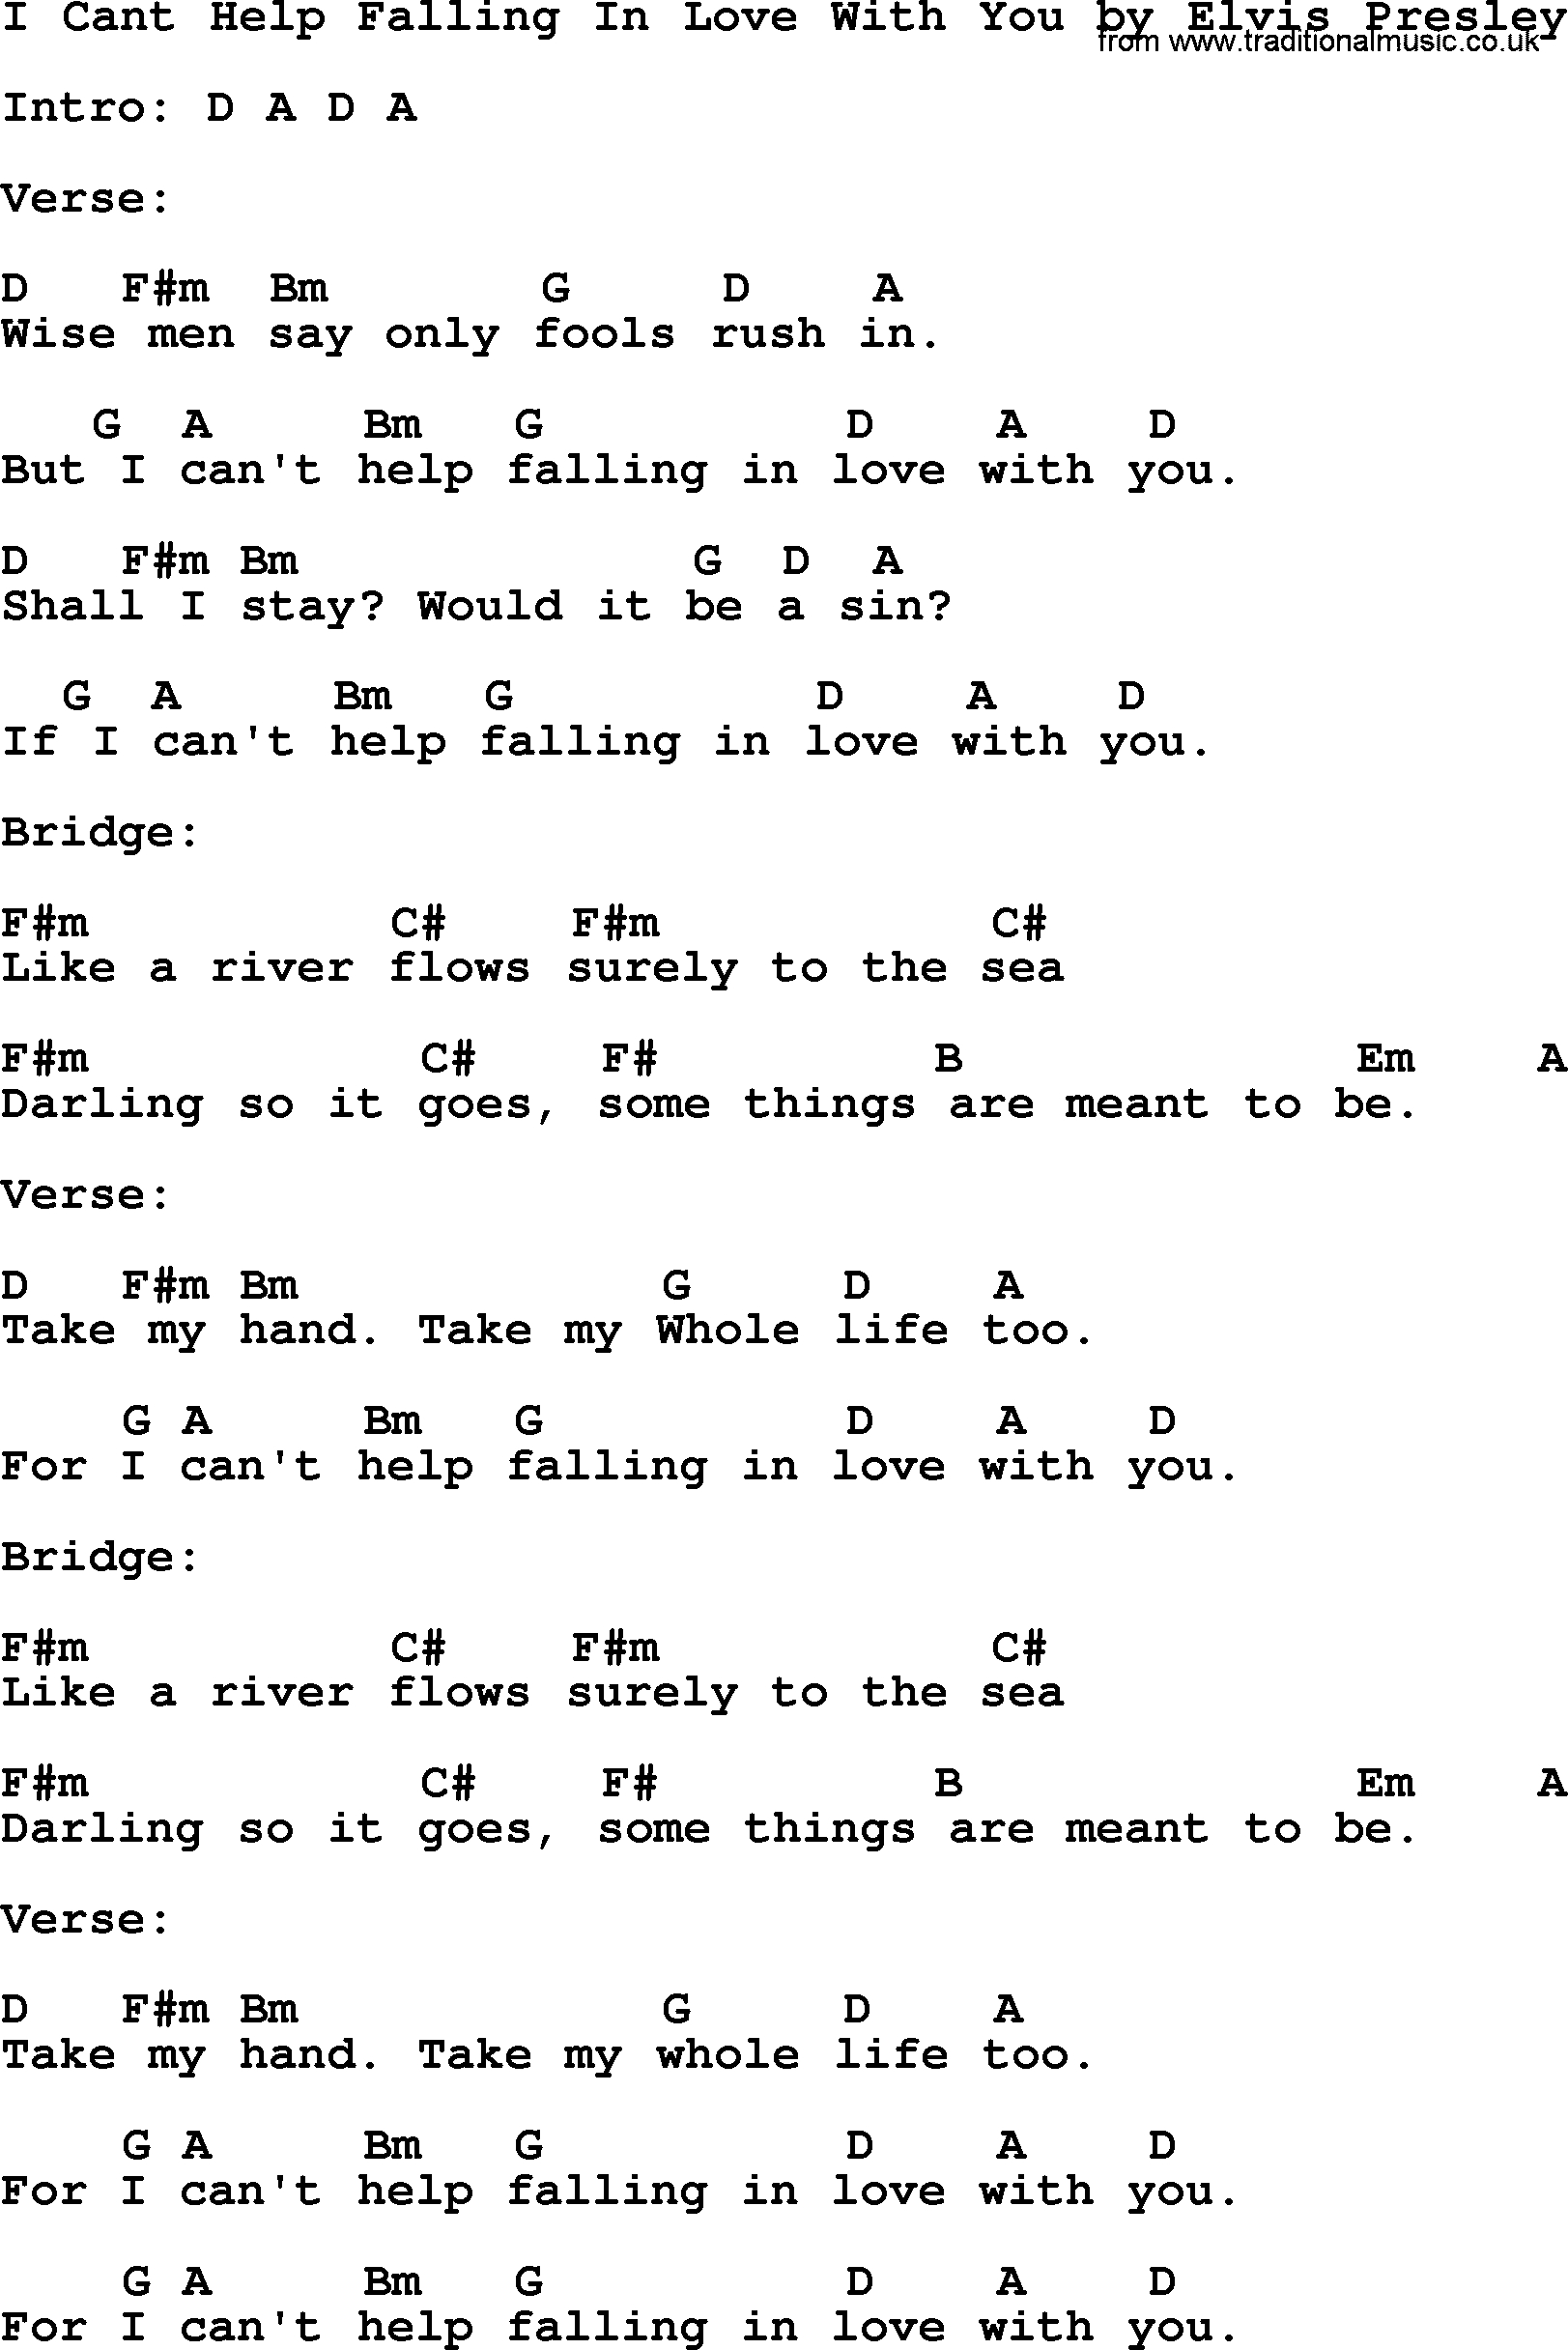 Can T Help Falling In Love Chords I Cant Help Falling In Love With You Elvis Presley Lyrics And